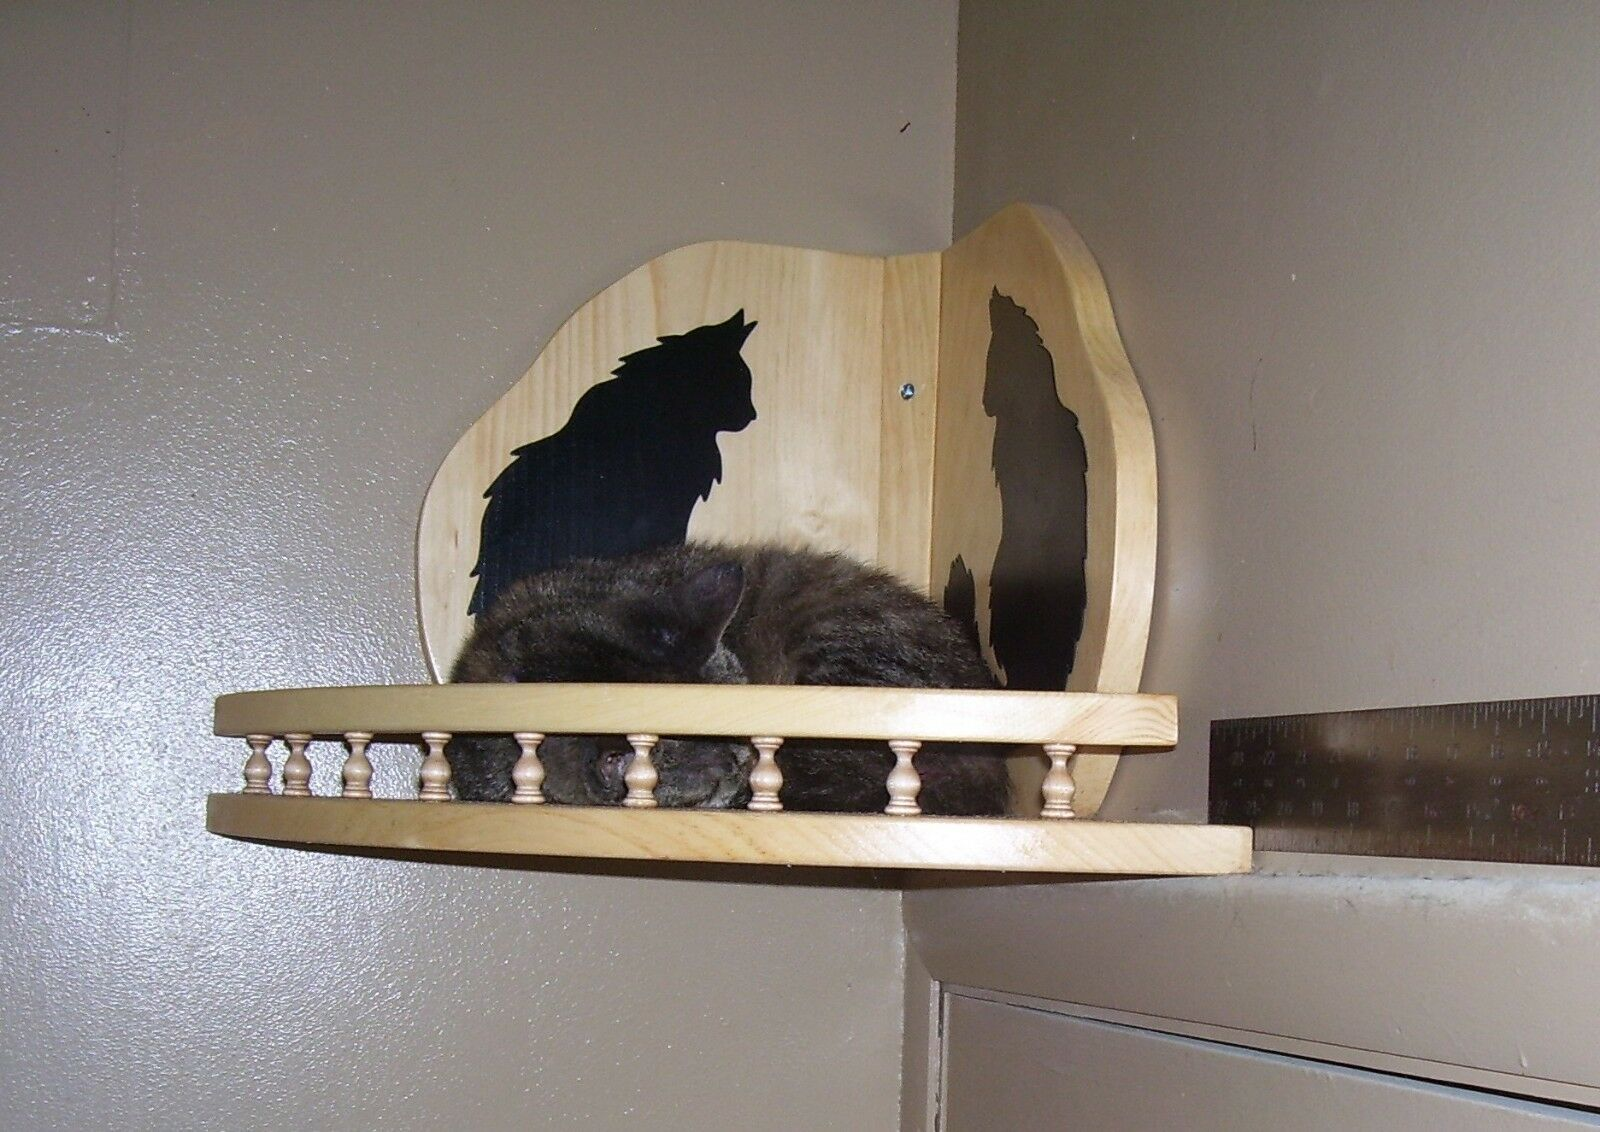 Cat Bed Hanging Wooden Corner Shelf with Gallery Rail Handcrafted Handcrafted Handcrafted Pinewood 6fcefb